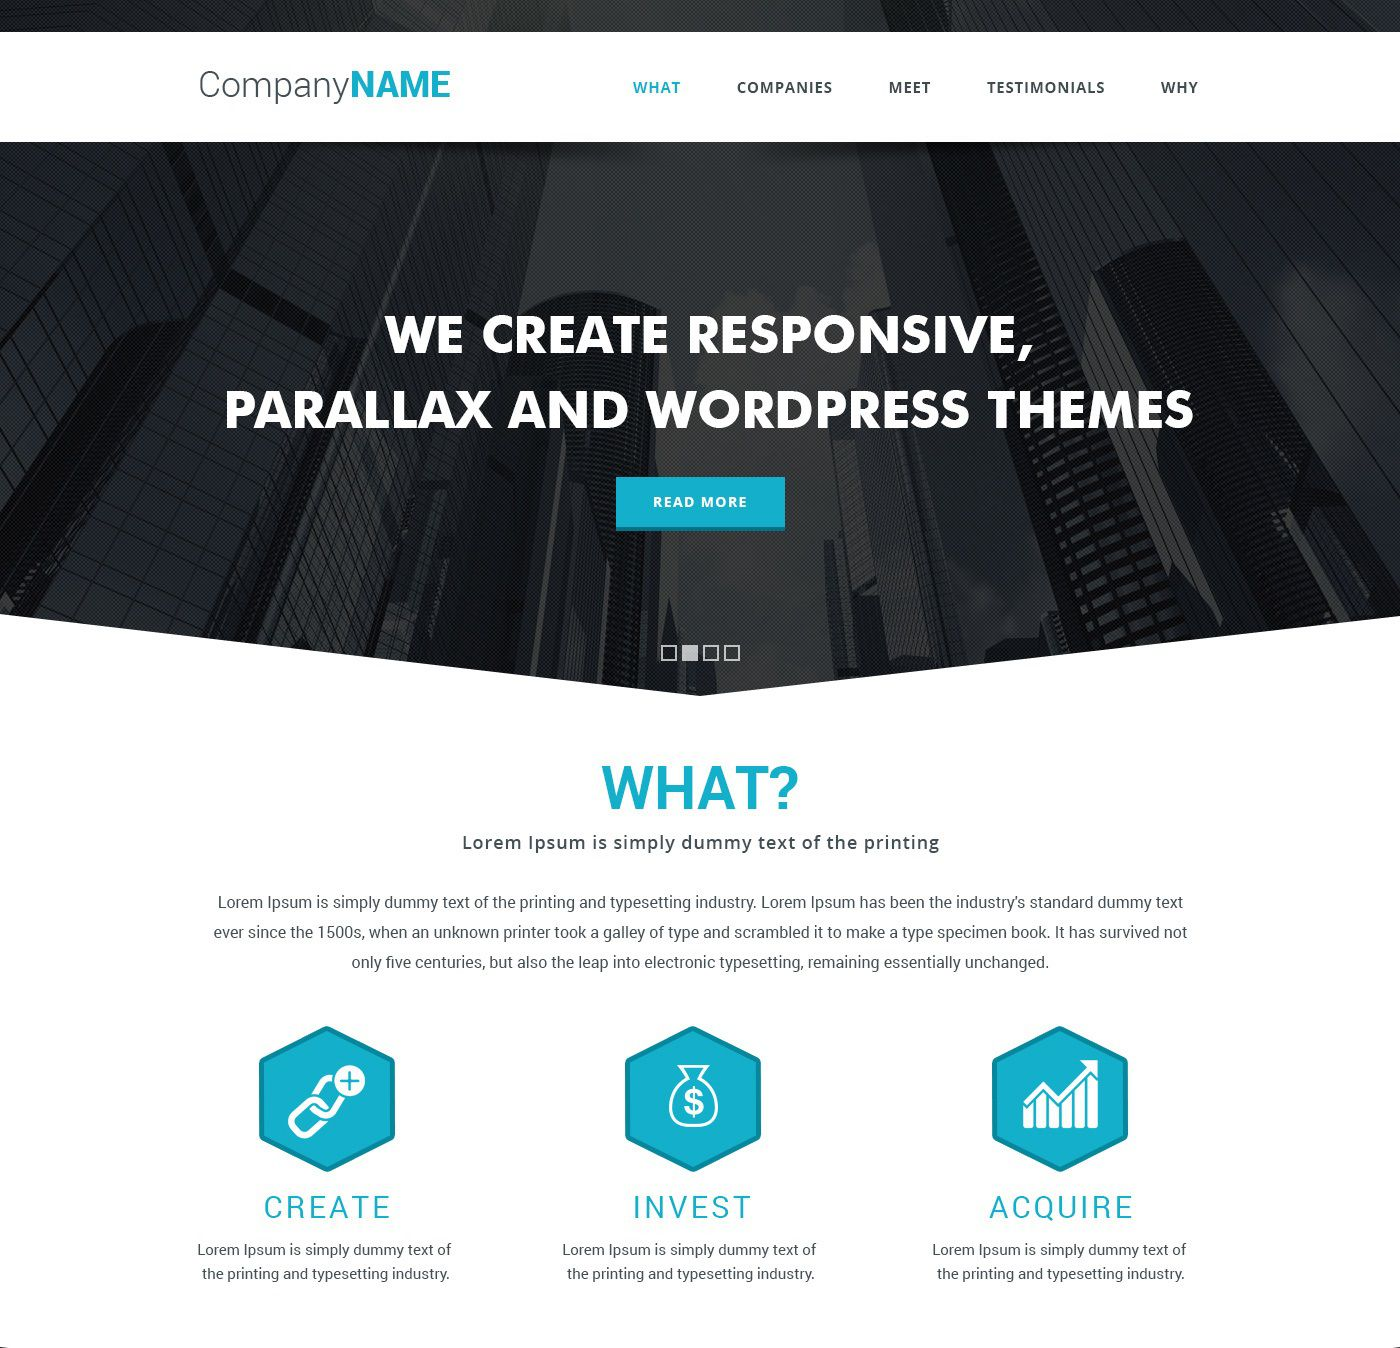 007 Wonderful Simple Web Page Template Free Download Image  One Website Html With CsFull